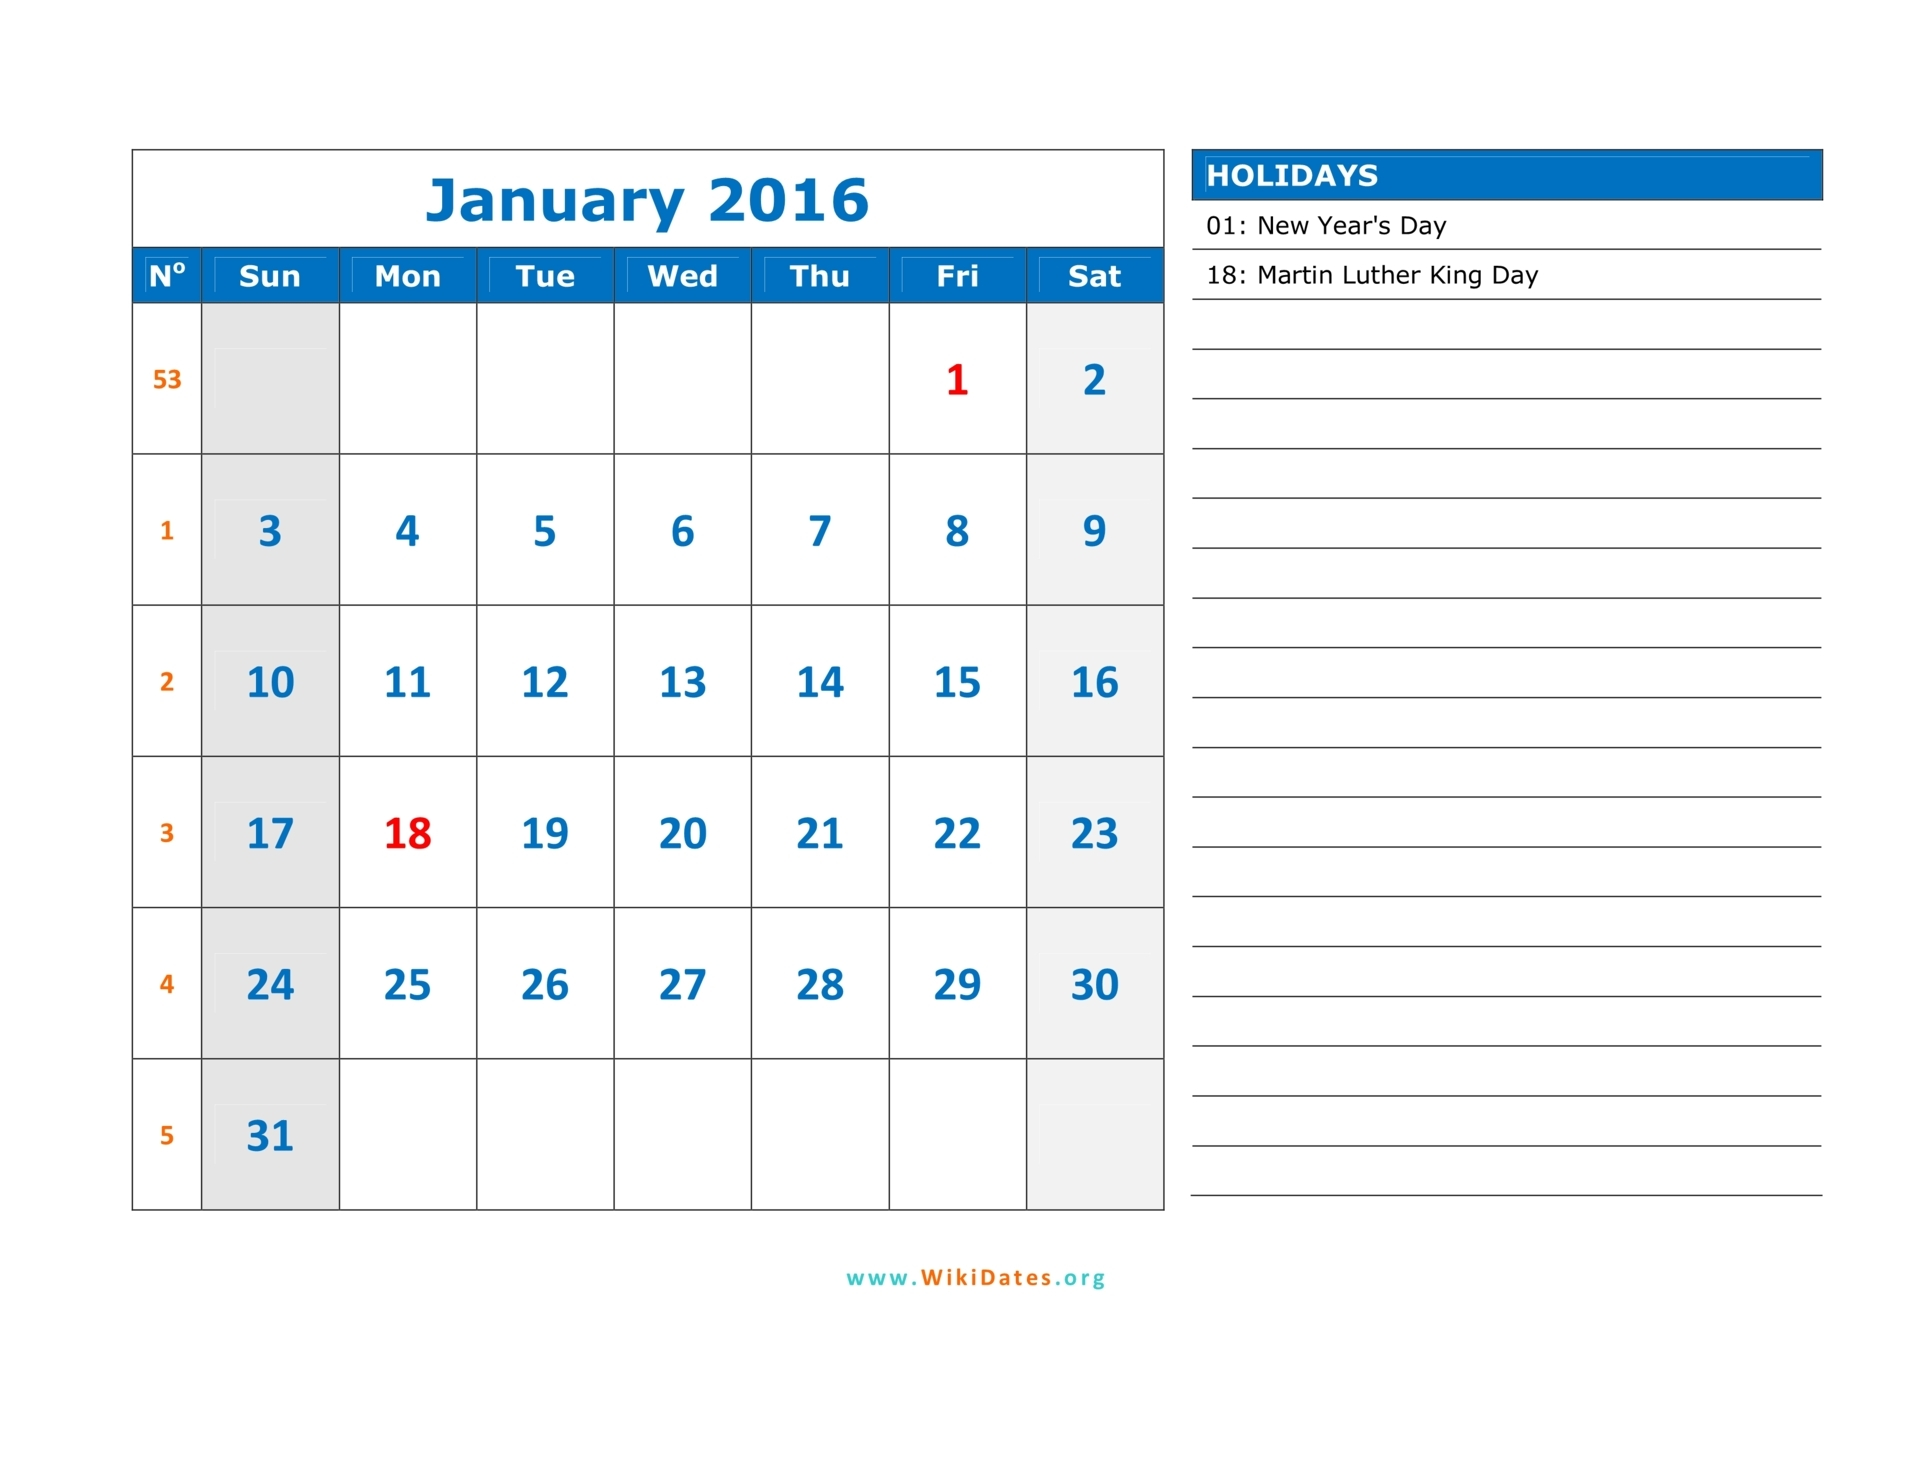 2016 january calendar clipart picture free download January 2016 clipart - ClipartFox picture free download